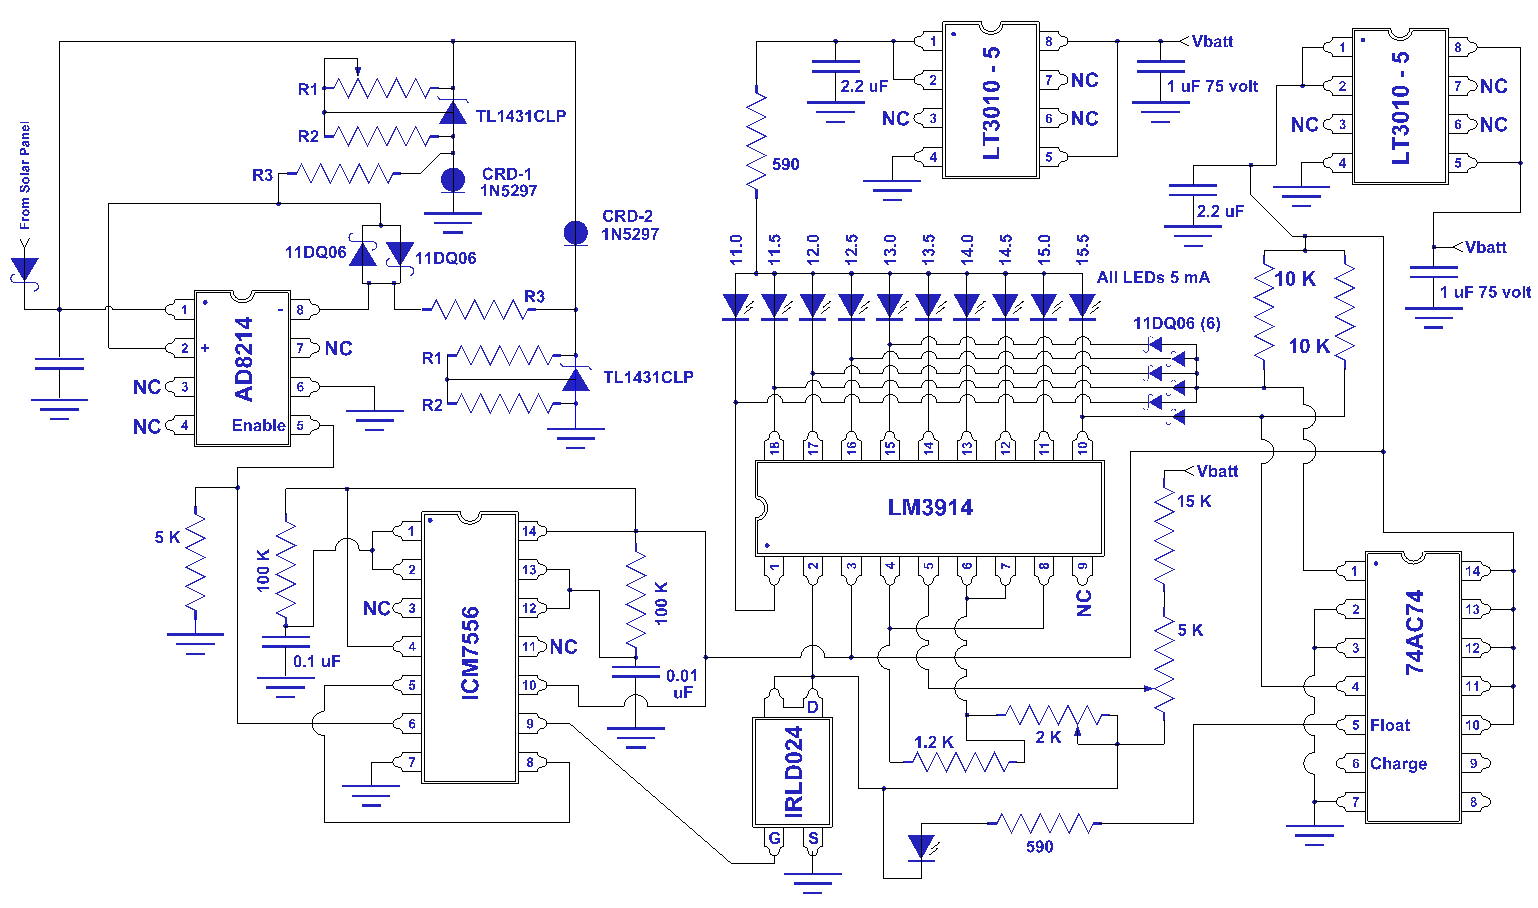 This light curtain wiring diagram for more detail please visit source - 250w Pwm Inverter Circuit Sg3524 Electronics Solution Electronics Pinterest Circuits Arduino And Electronic Schematics